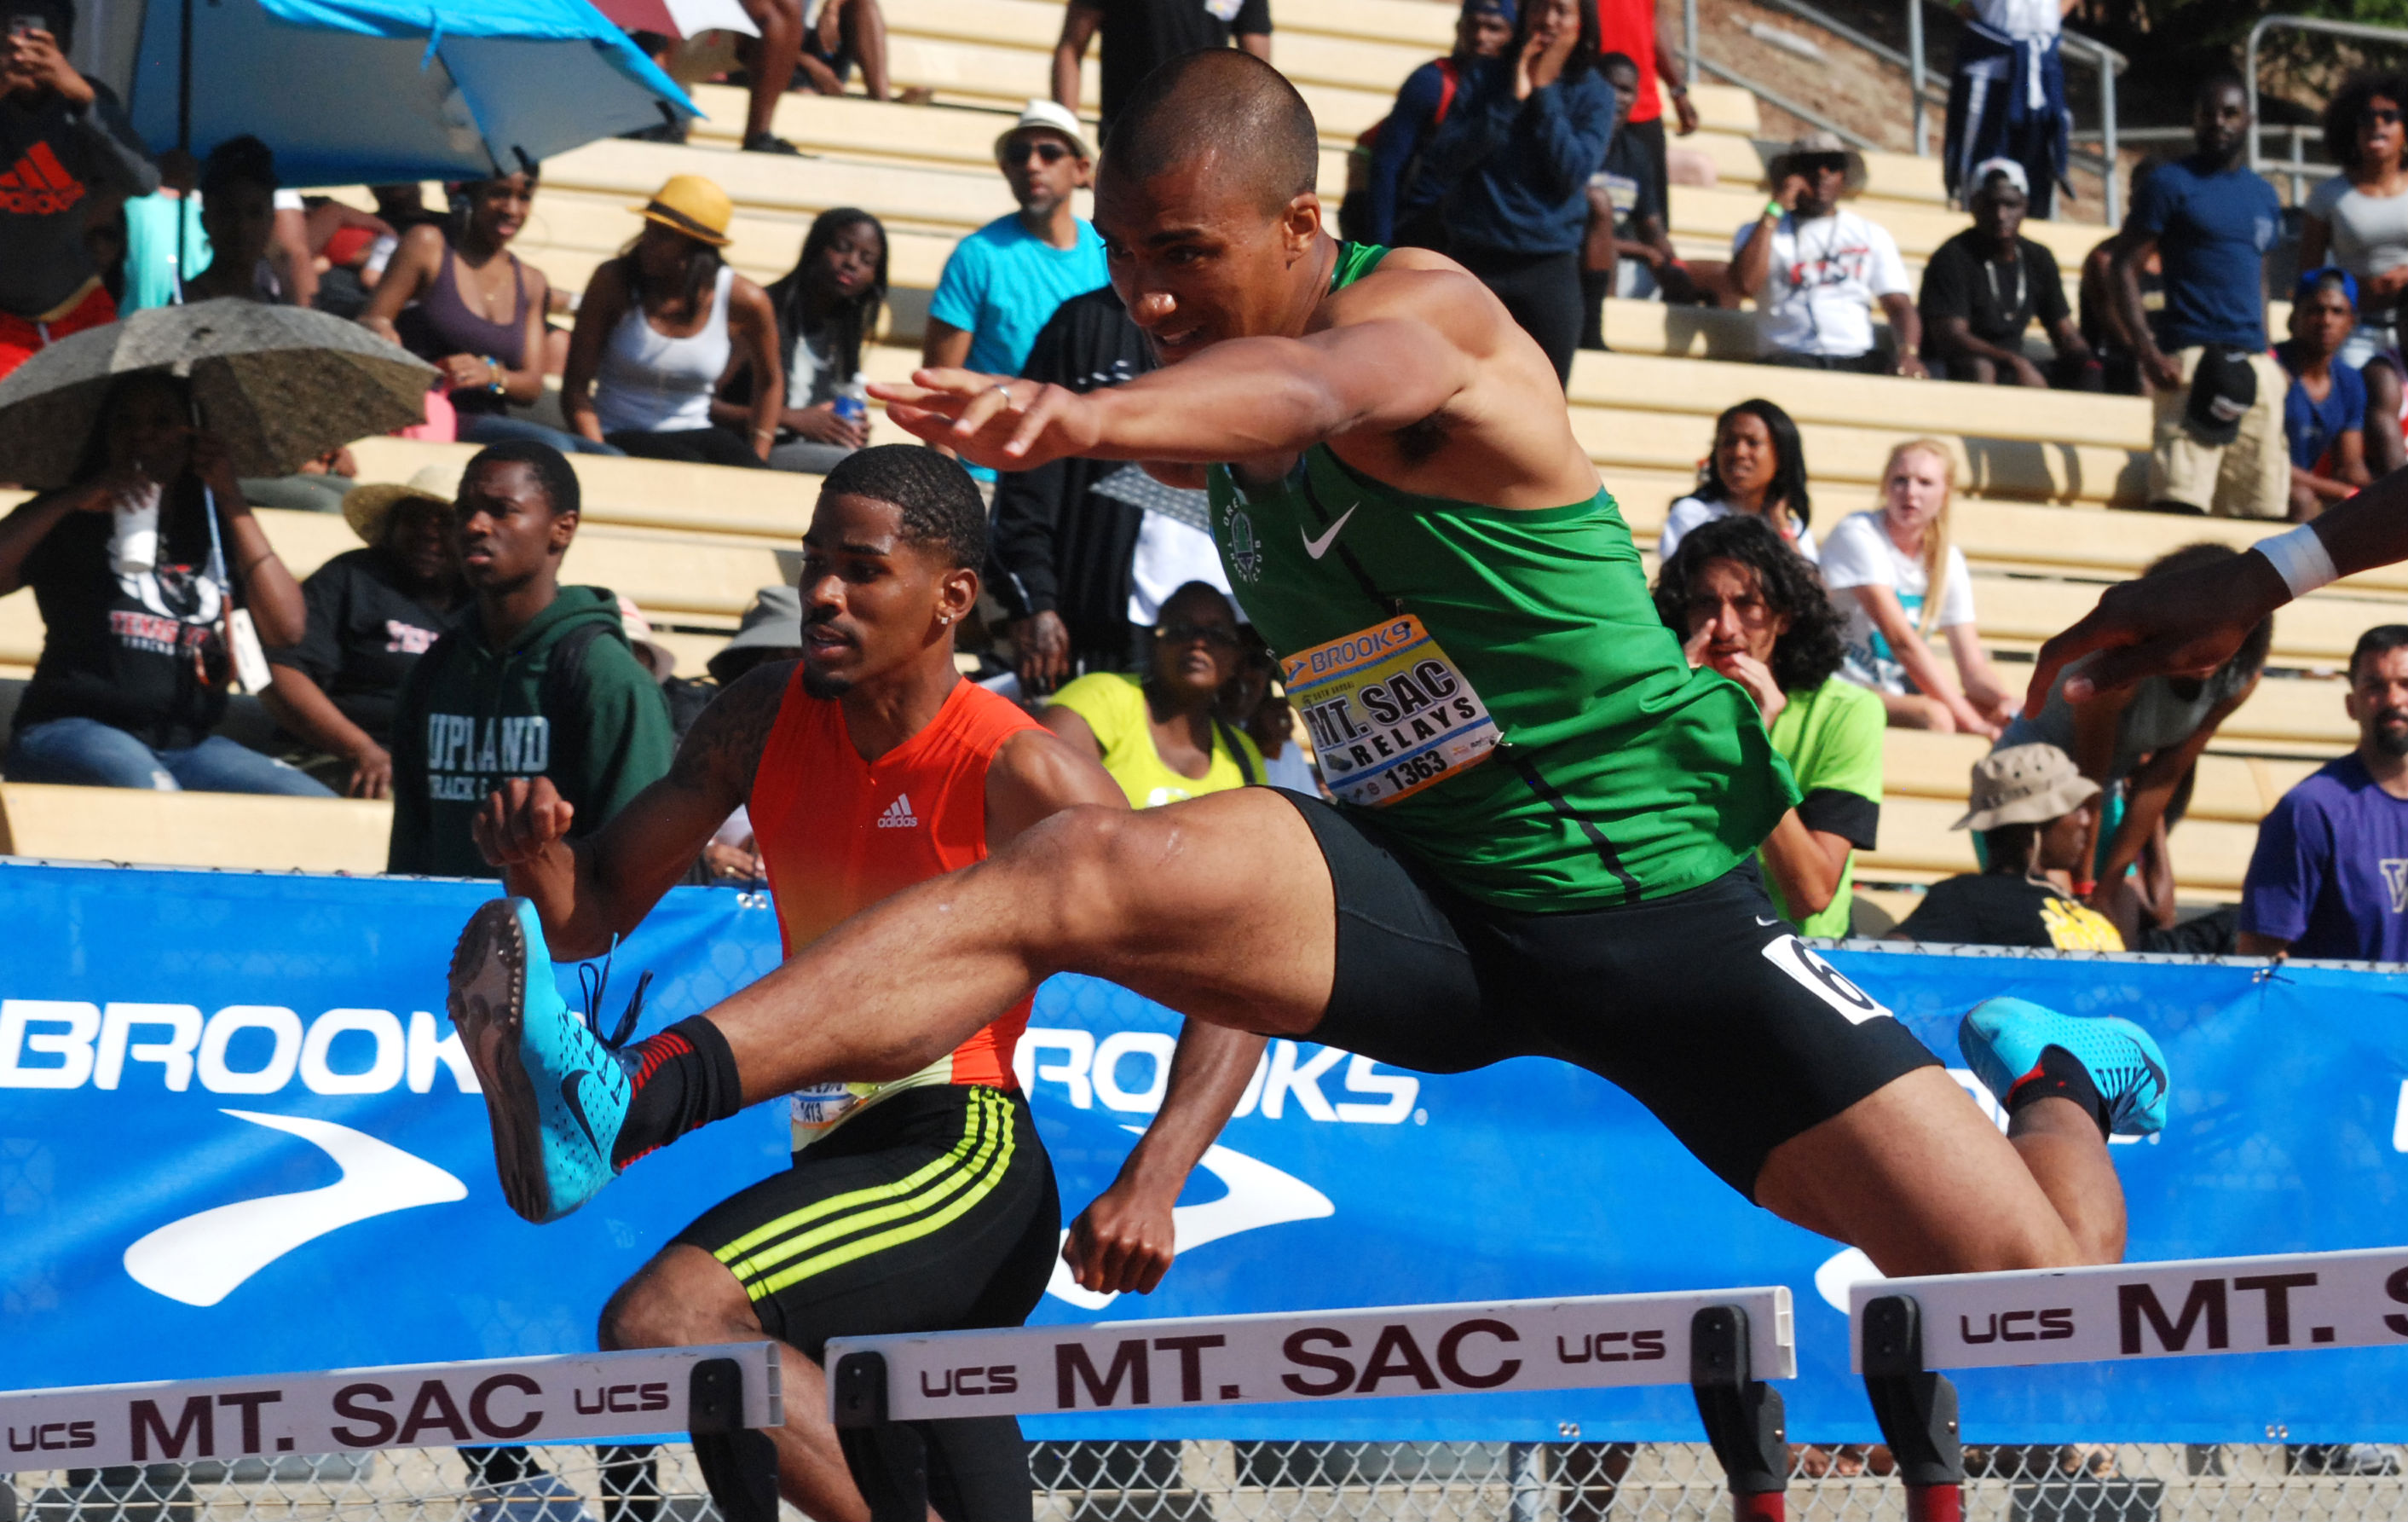 Ashton Eaton clears last 36-inch barrier in his long-awaited debut at the 400-meter hurdles at the Mt. SAC Relays on April 19, 2014. Photo by Ken Stone